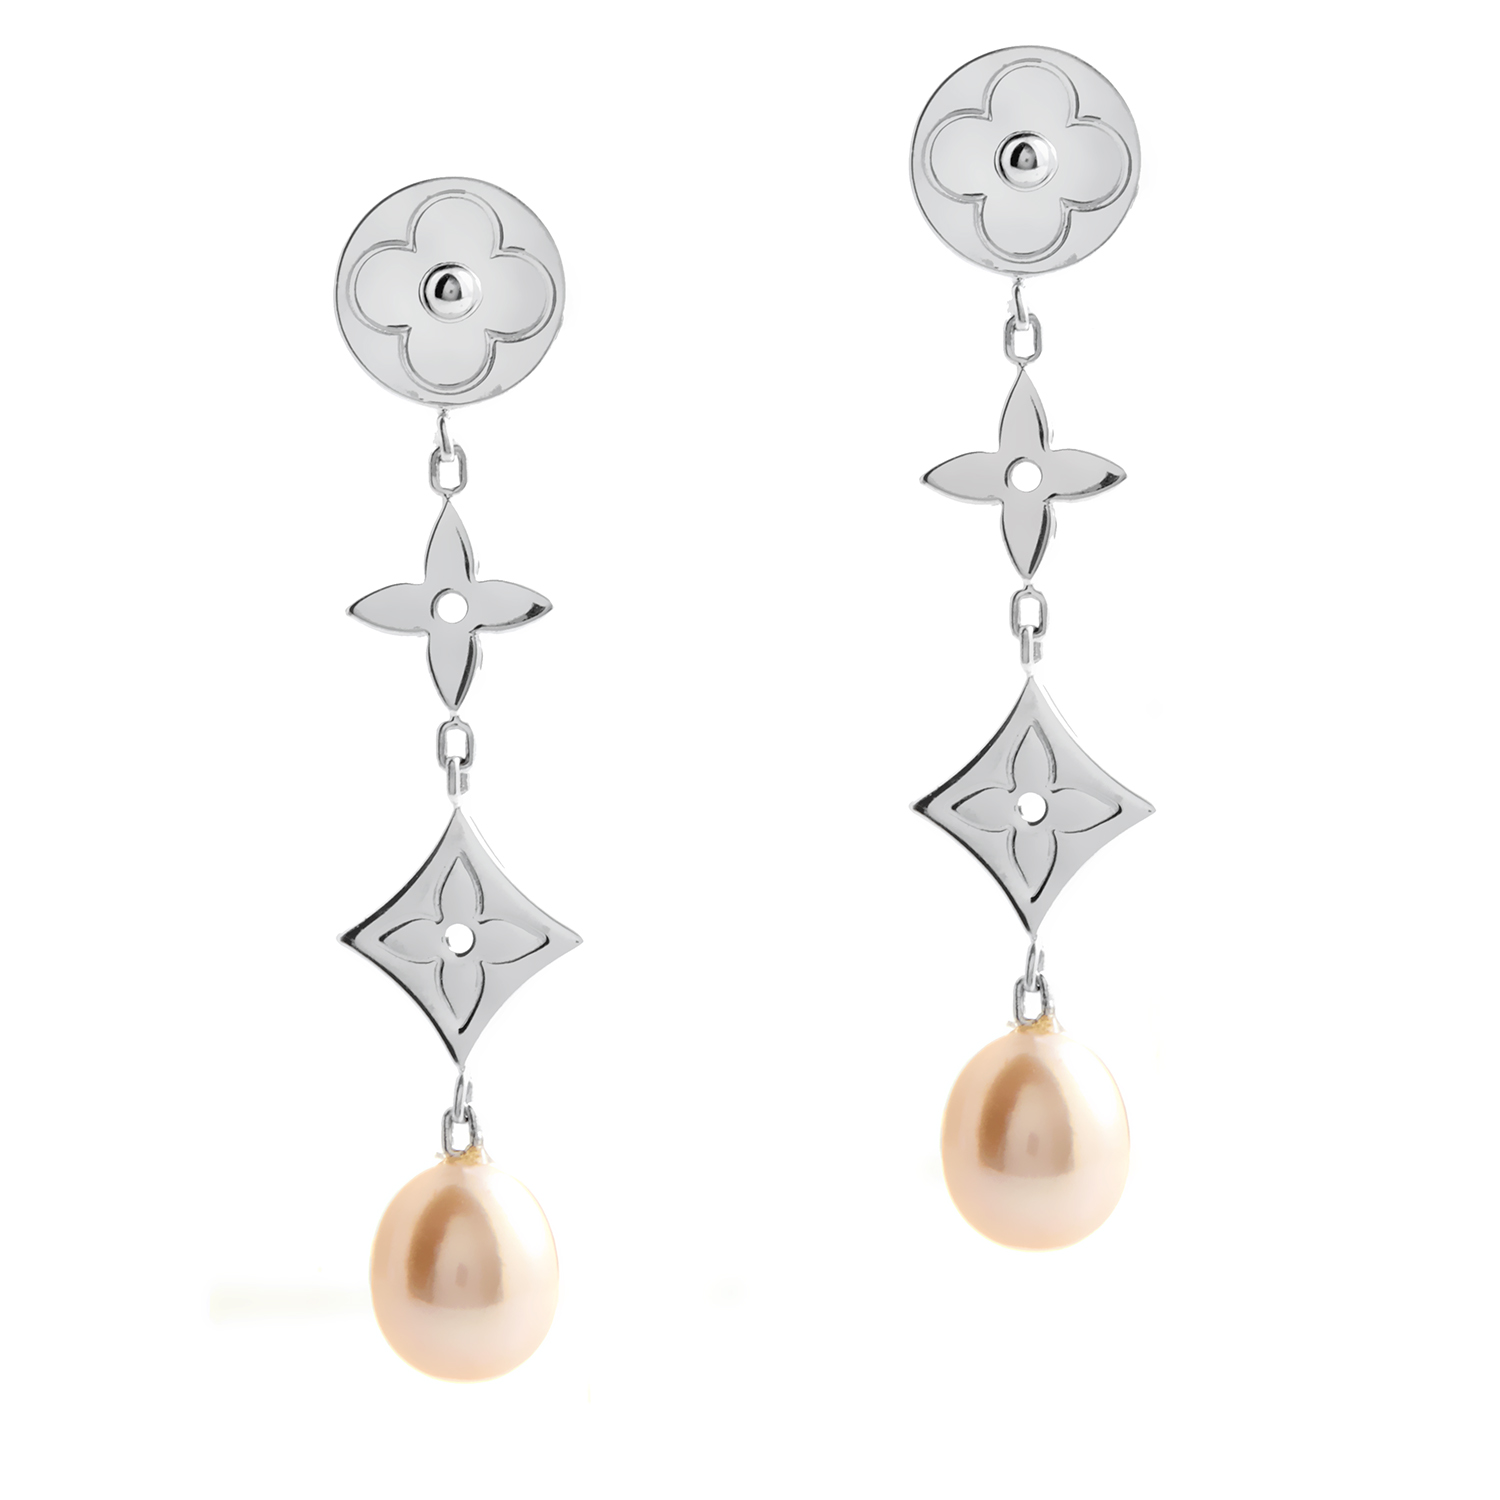 Louis Vuitton Idylle Blossom Women's 18K White Gold Pink Pearl Drop Earrings